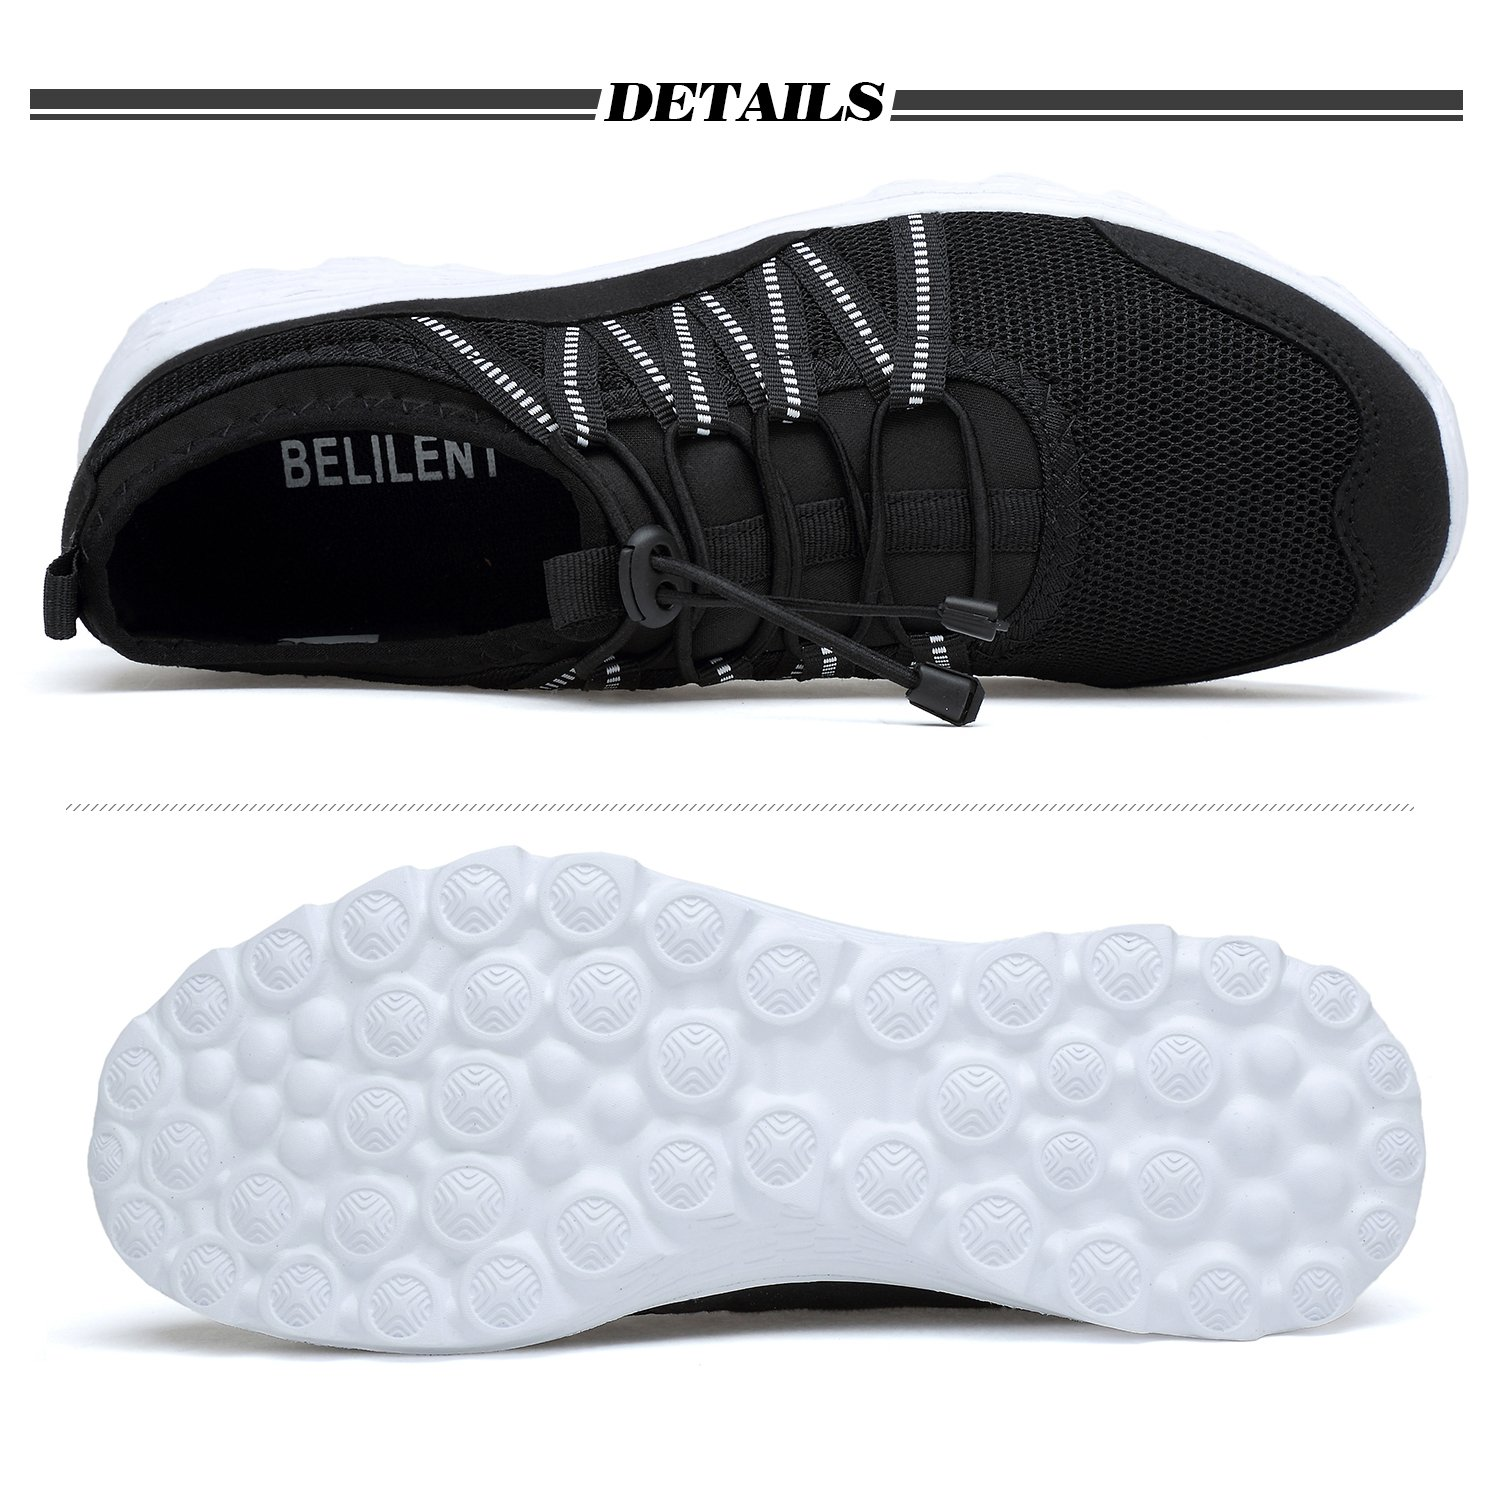 Men's Lightweight Walking Shoes Breathable Mesh Soft Sole for Casual Walk Outdoor Workout Travel Work by Belilent (Image #3)